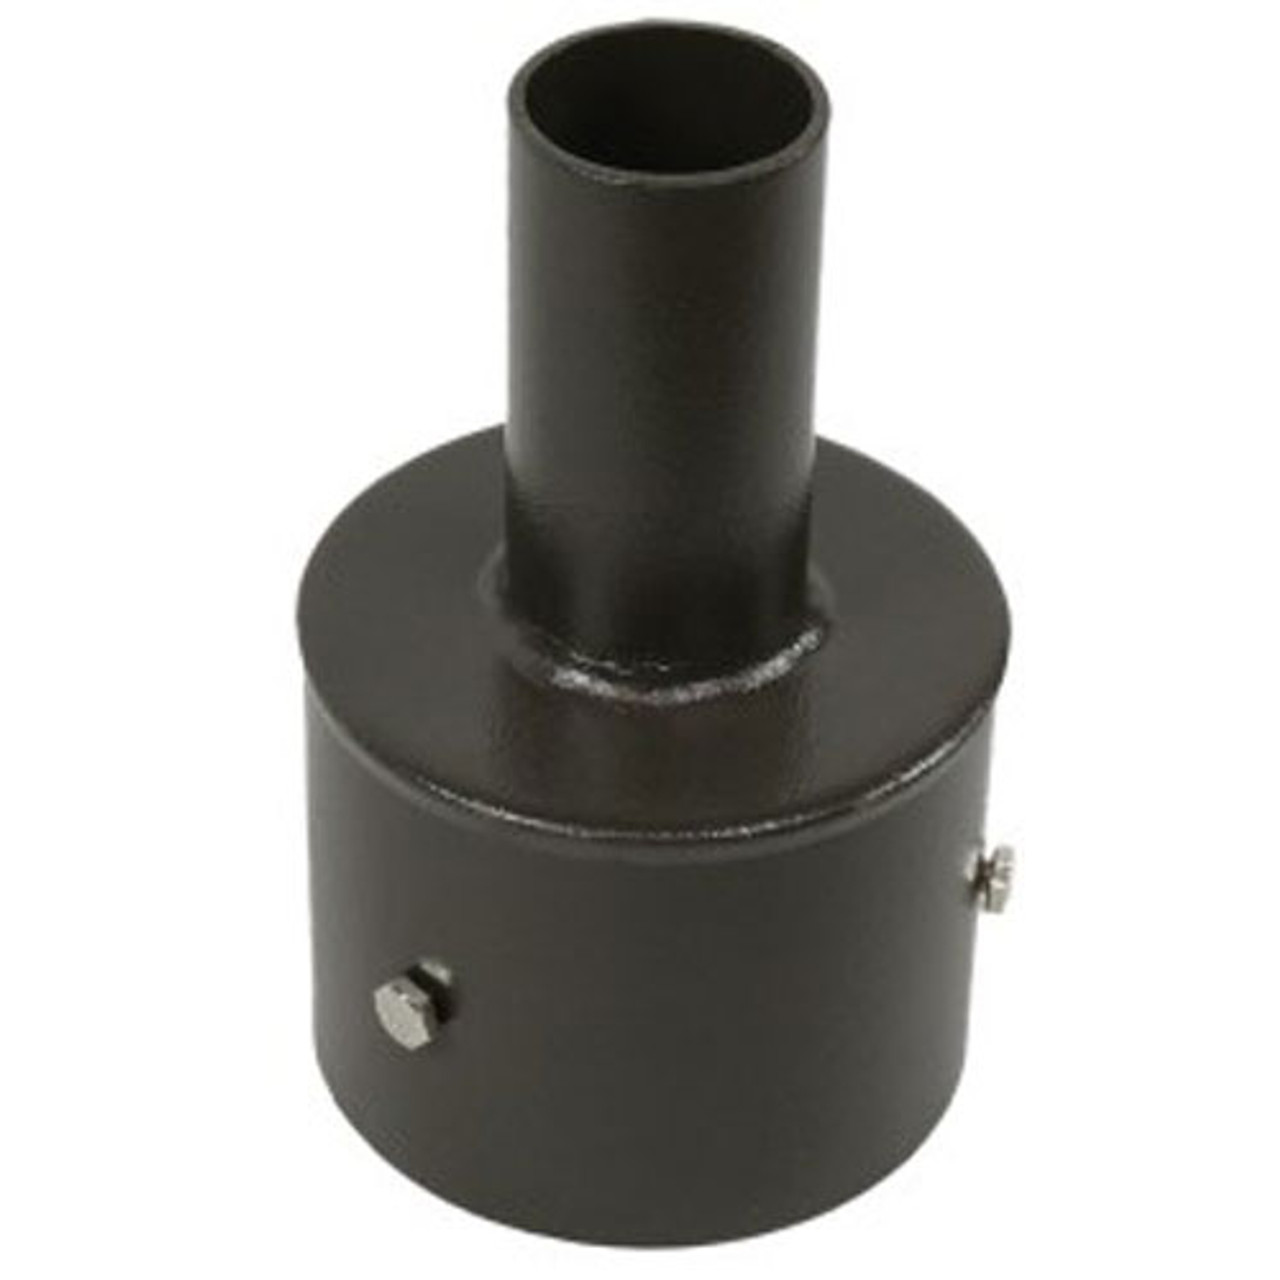 "Fixture Base for 5"" Round Pole Top"